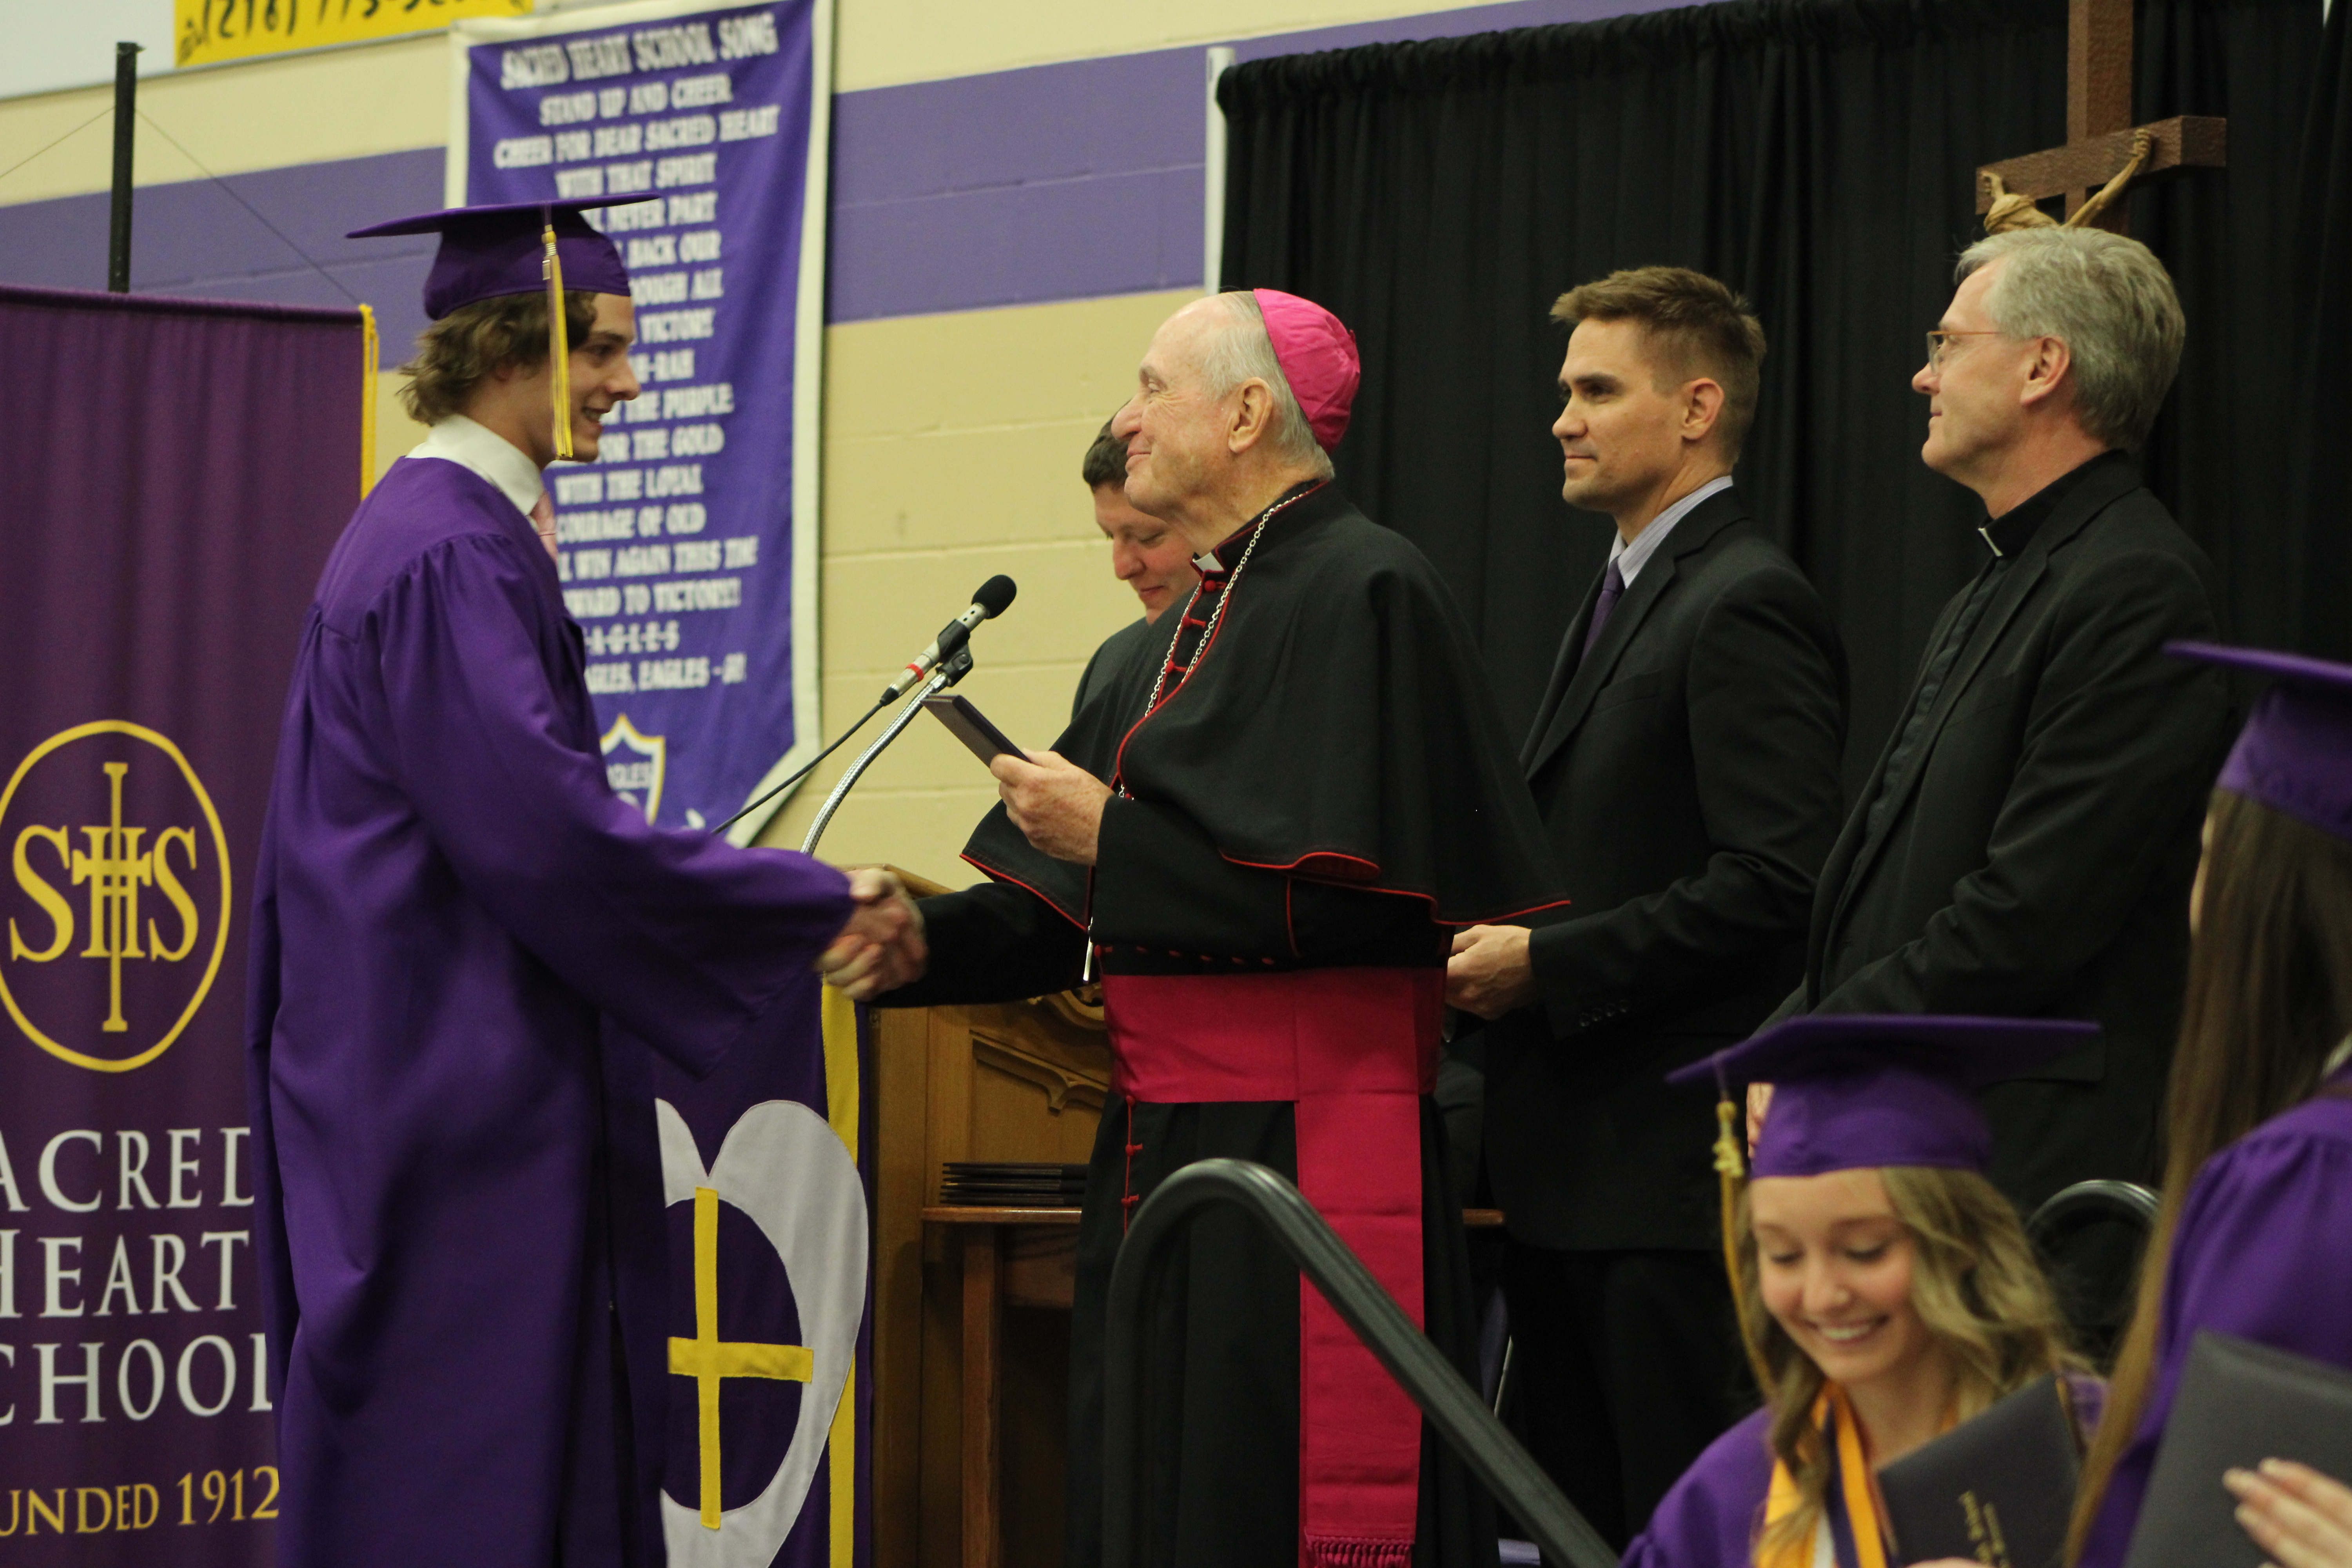 A Sacred Heart graduate receives his diploma at graduation from Bishop Pates,  Apostolic Administrator for the Diocese of Crookston.